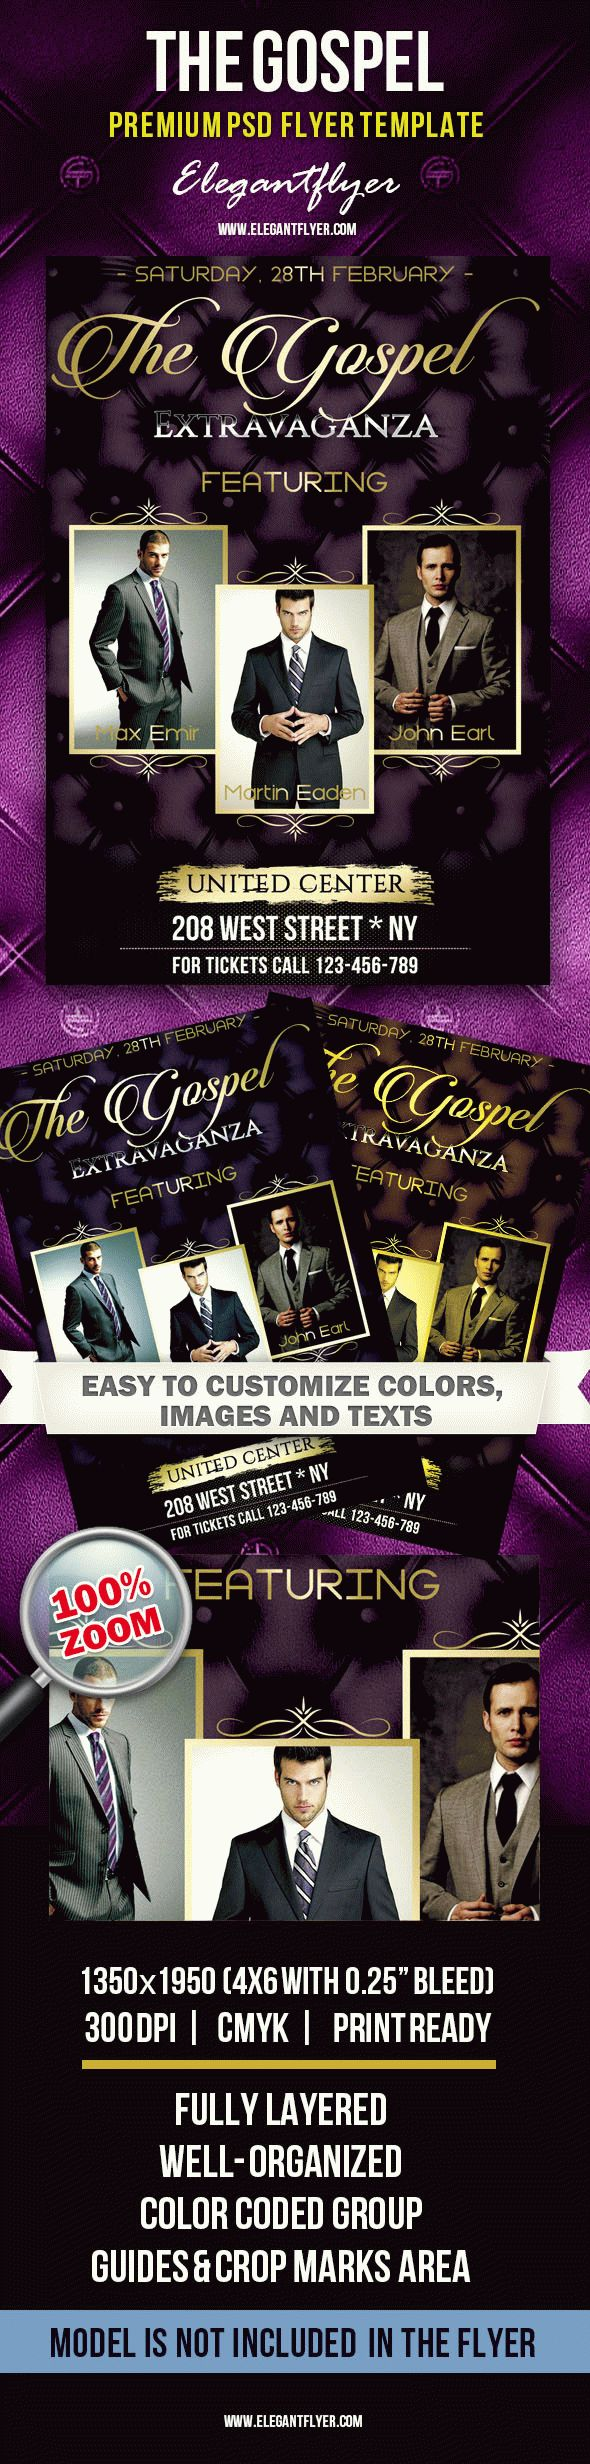 The Gospel Flyer